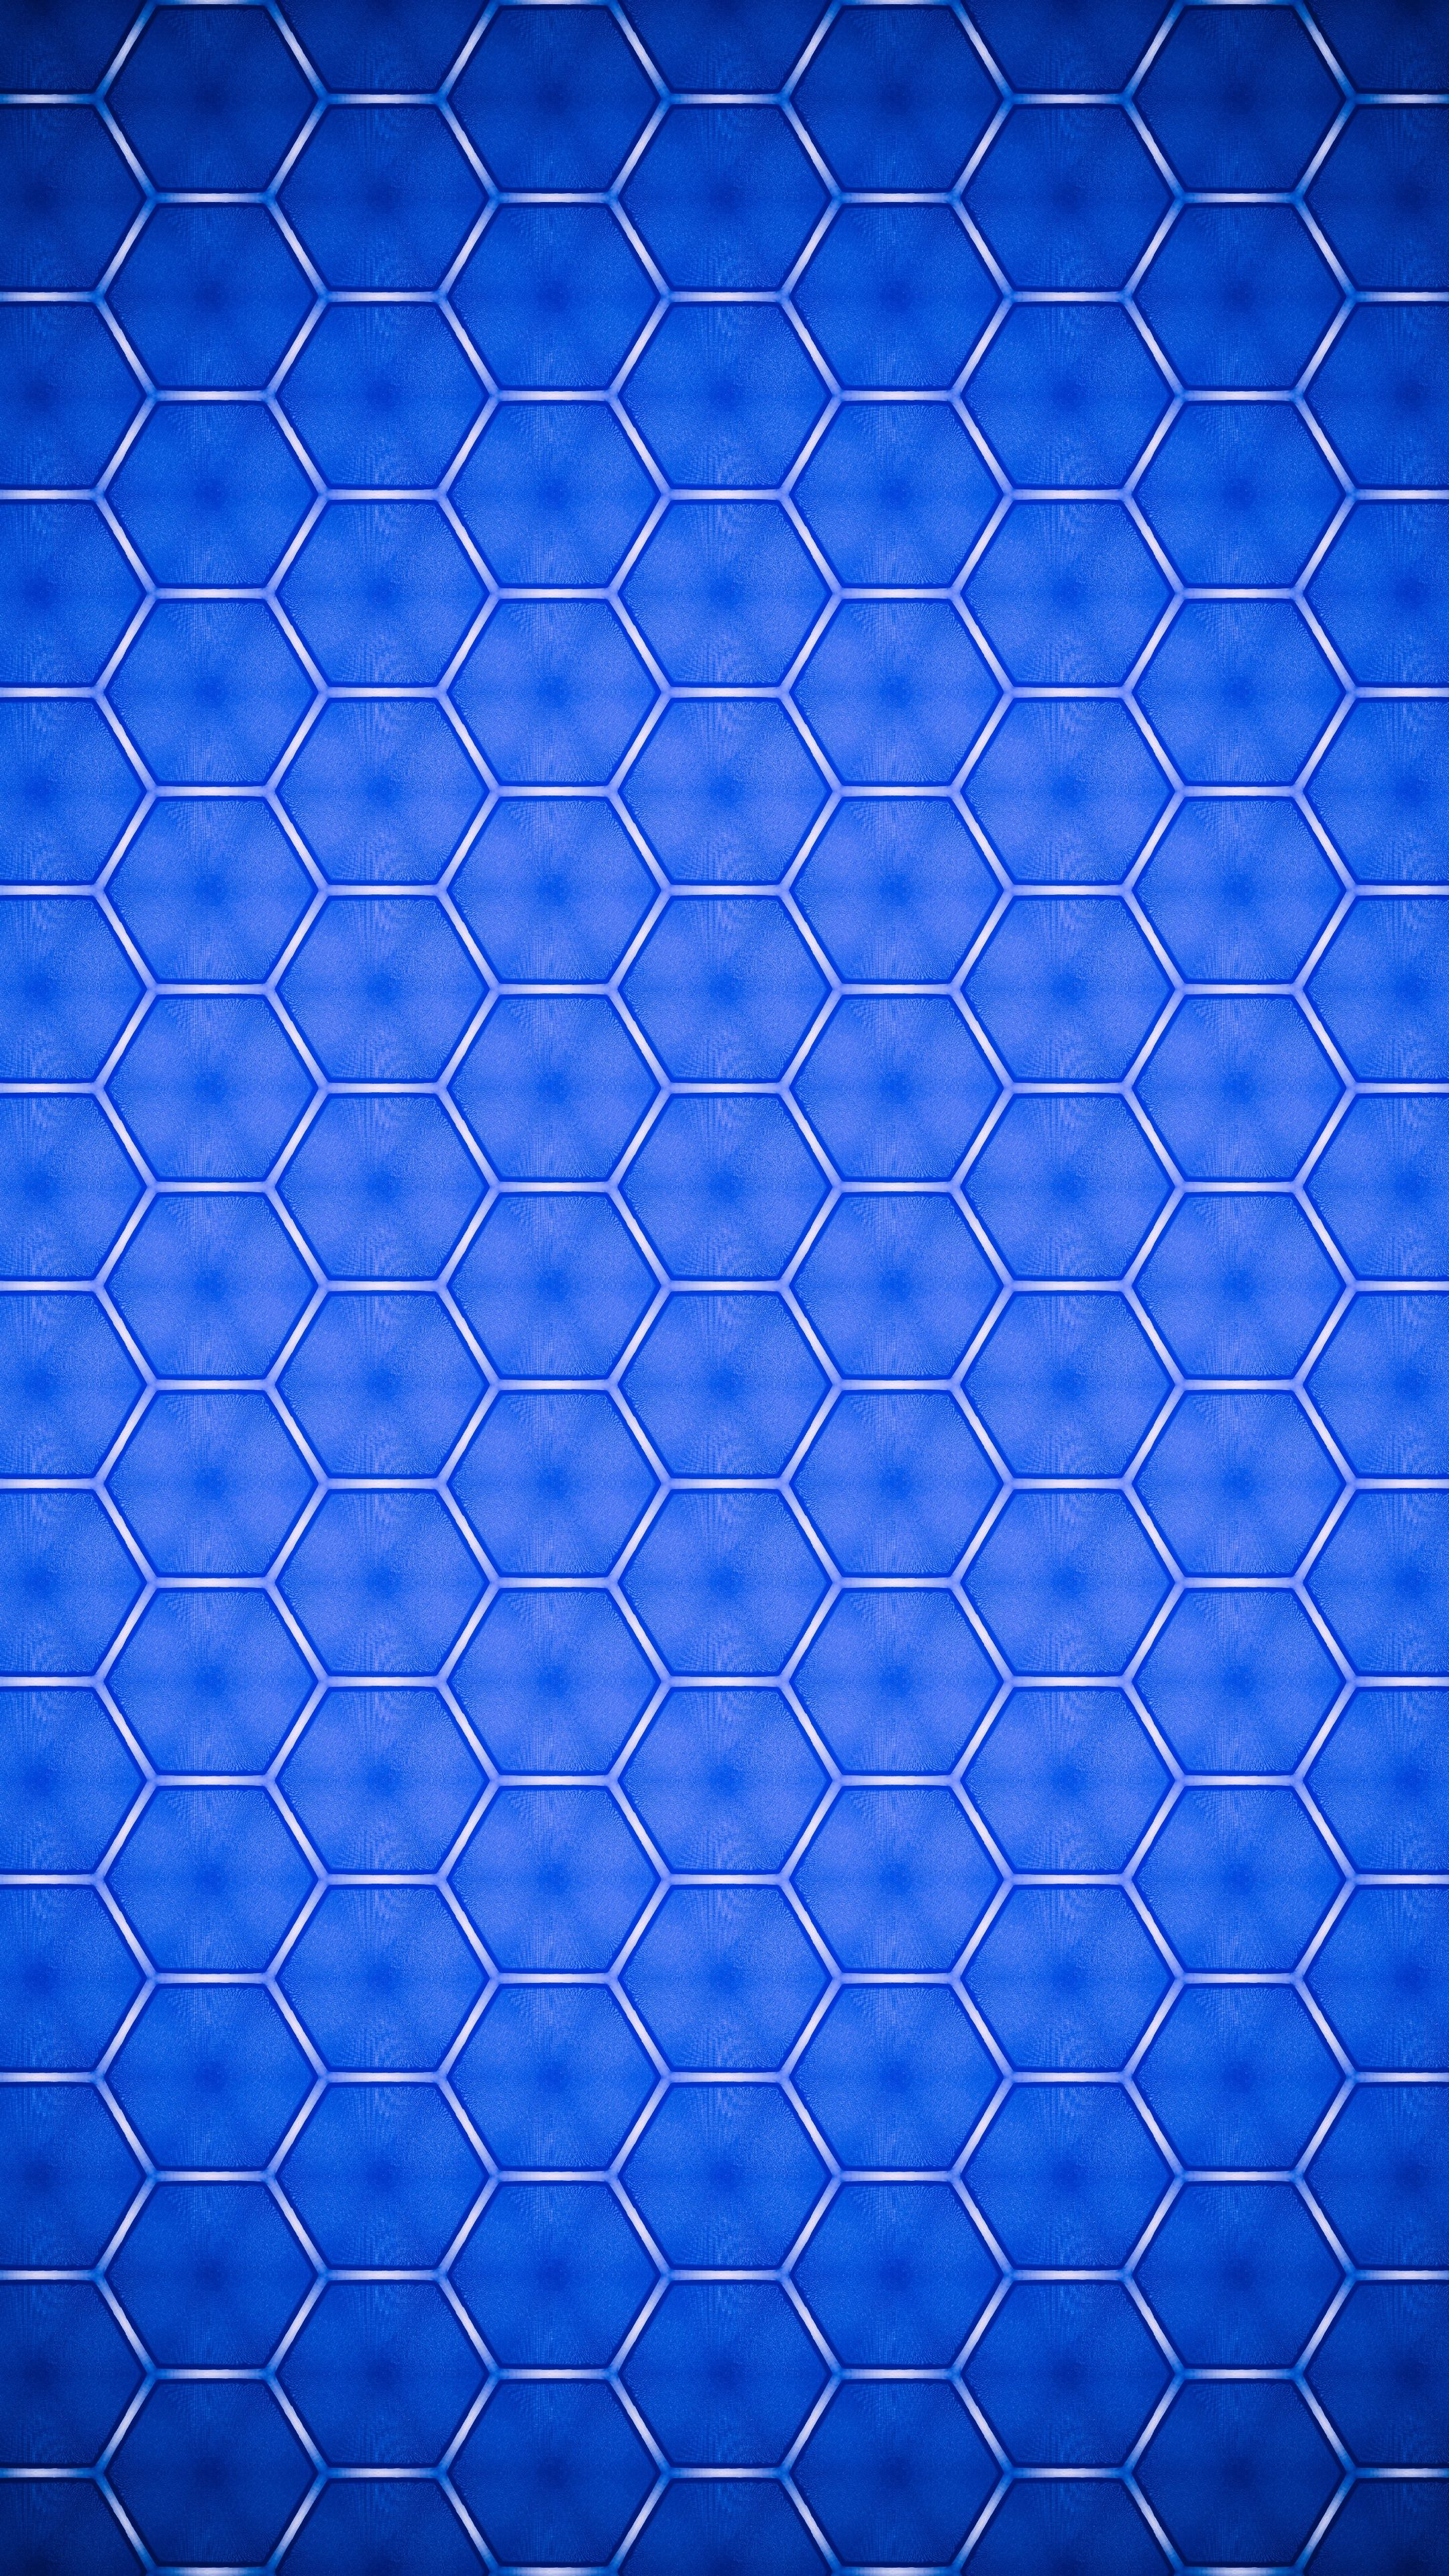 #Textures #texture #blue #shape #wallpapers hd 4k background for android :)